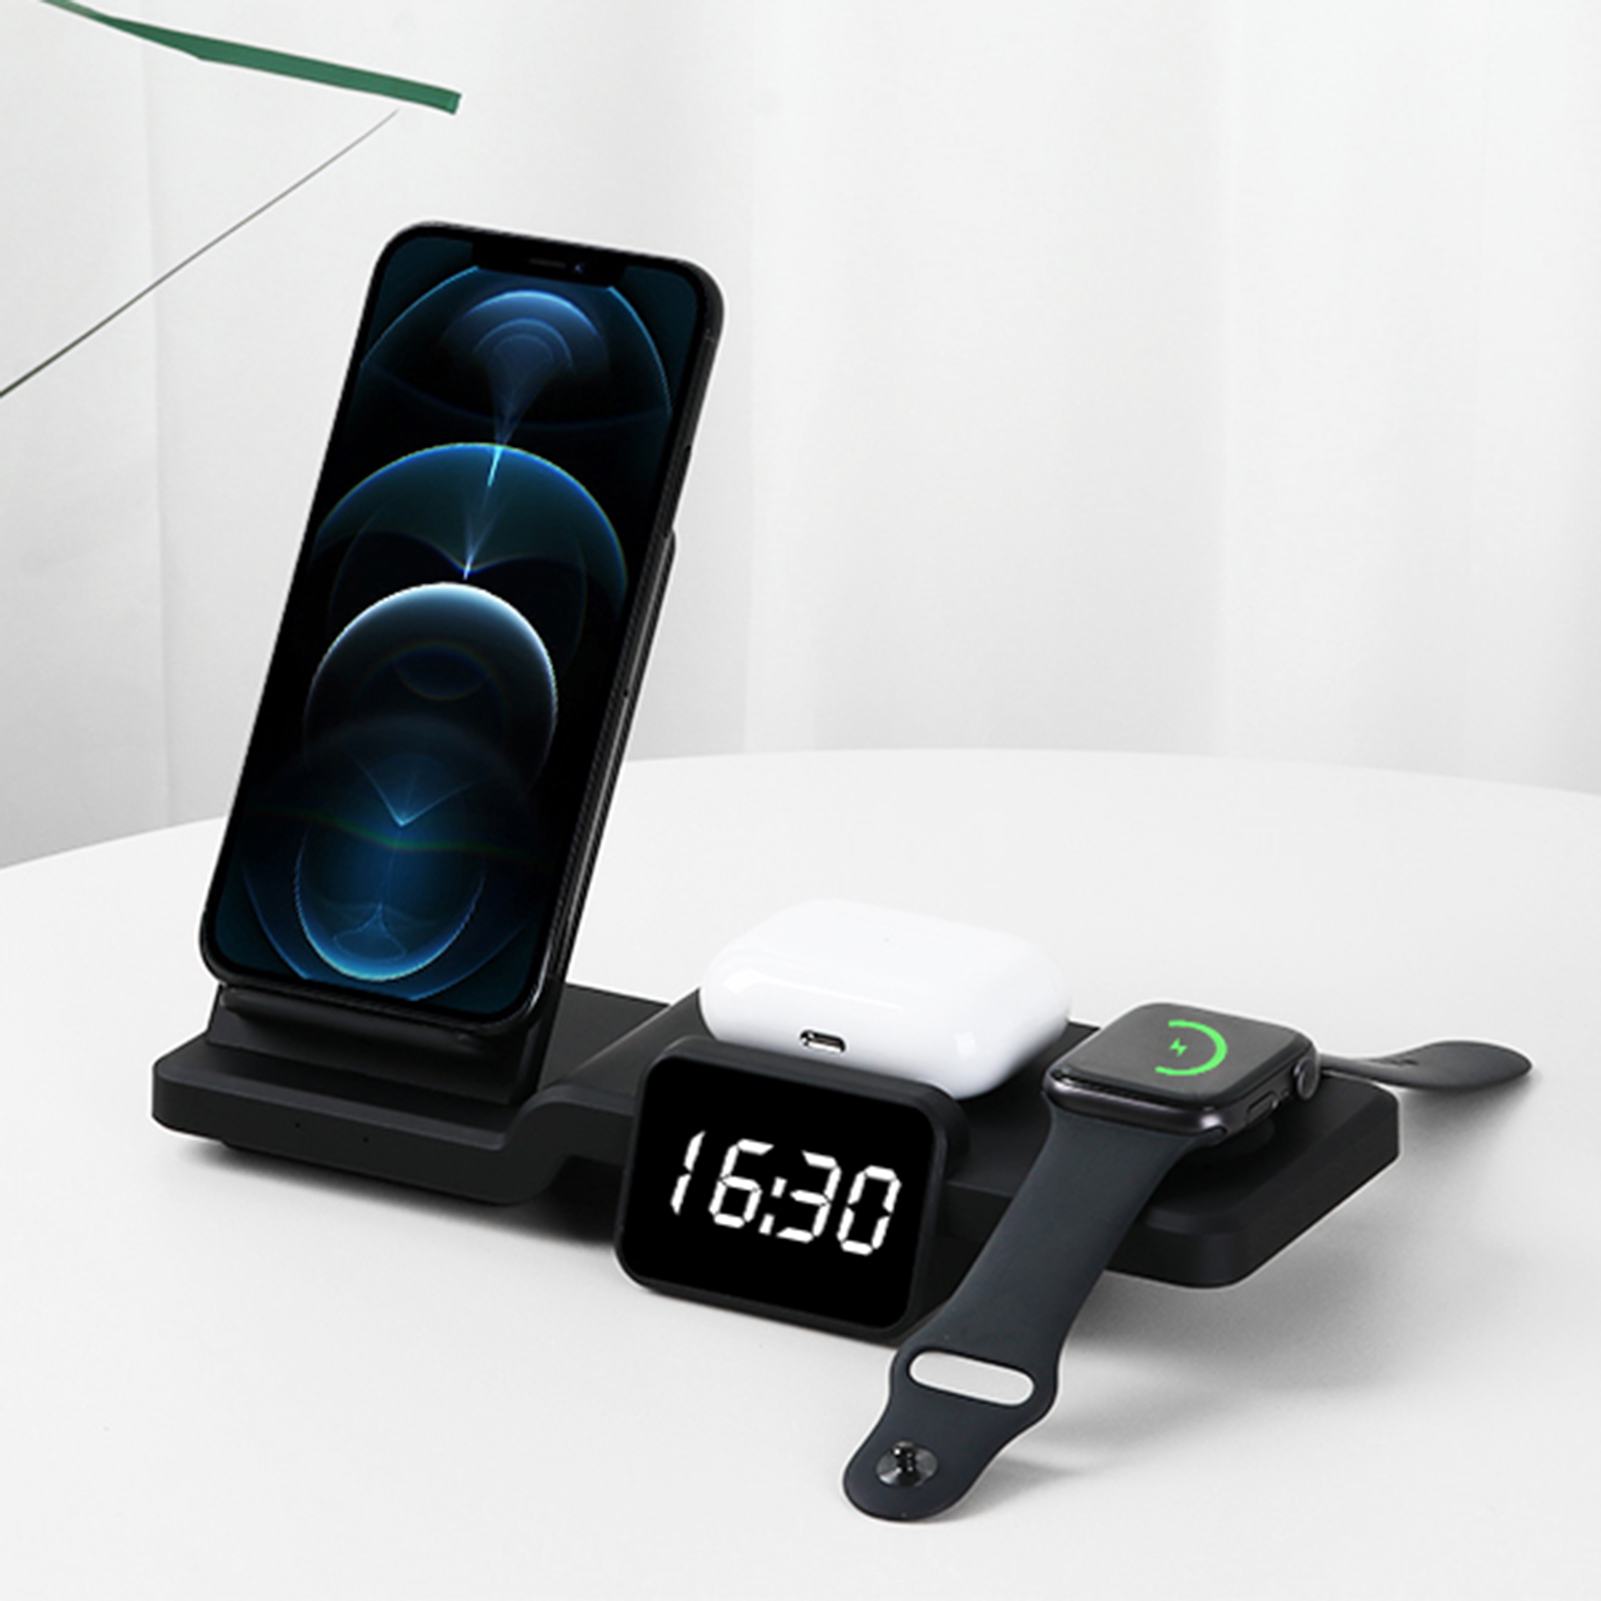 Multi-function Wireless Charger Stand For Iphone 12/ 11pro Smart Phone Watch Airpods Wireless Charging With Clock Charge Station